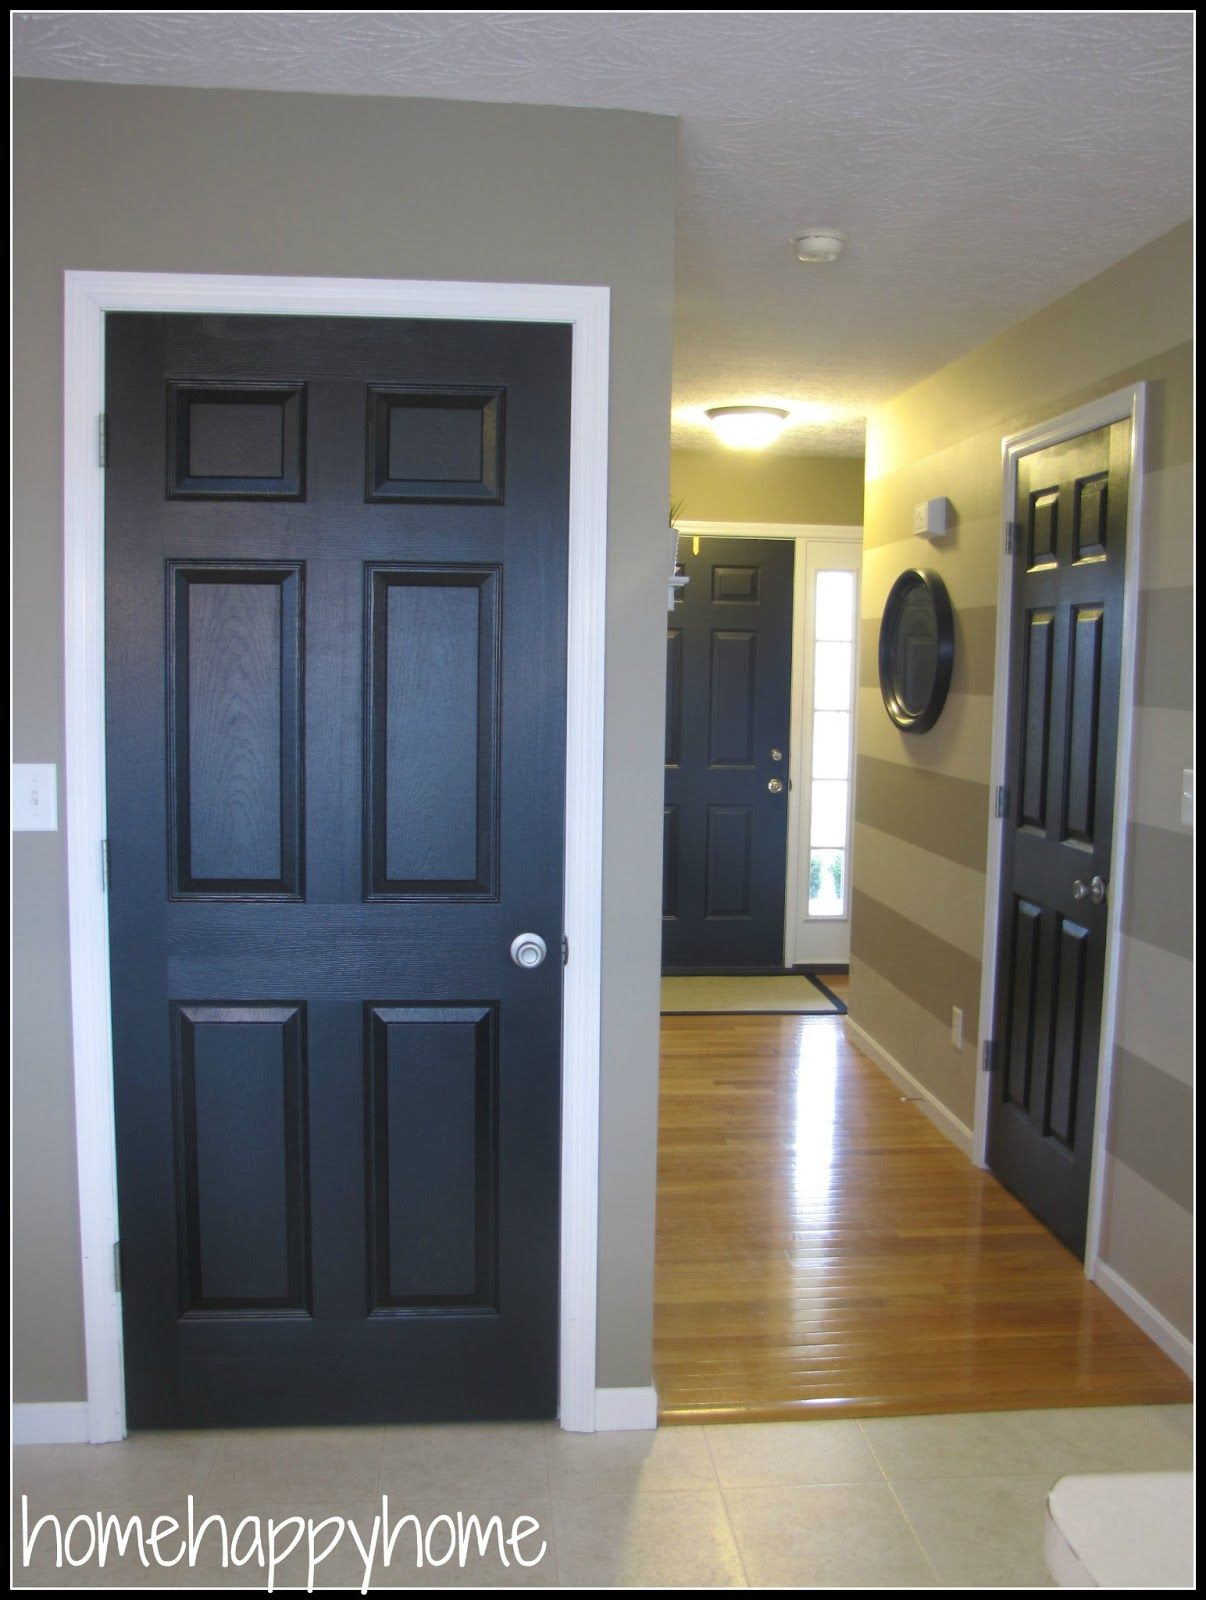 Home happy home black painted interior doors paint for My home interior